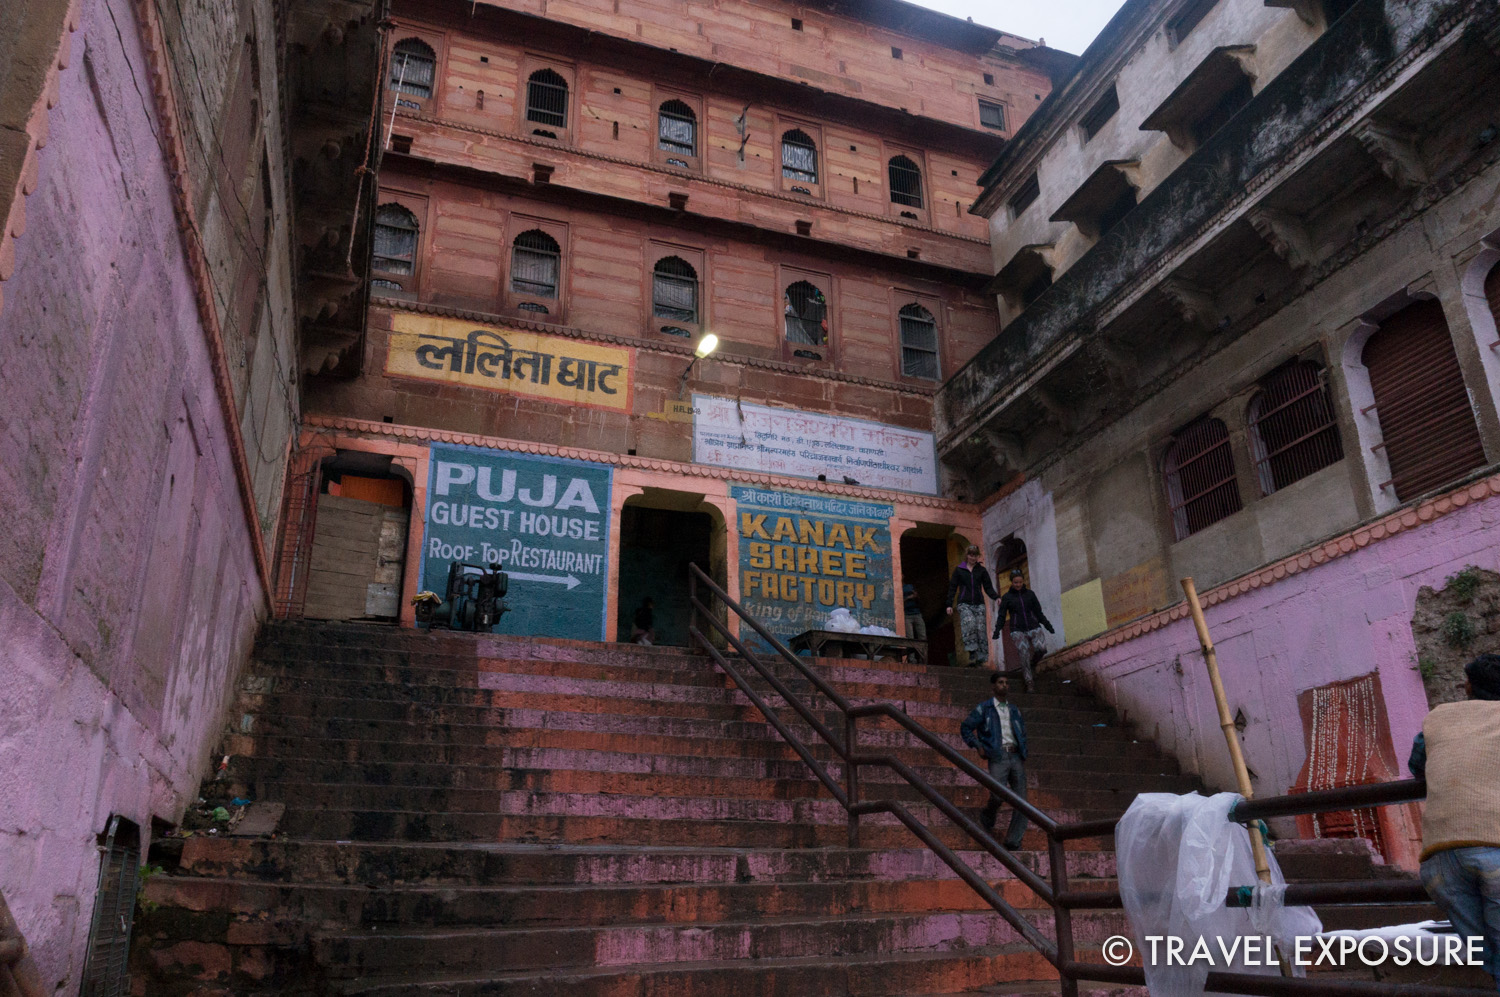 Walking around the ghats in Varanasi